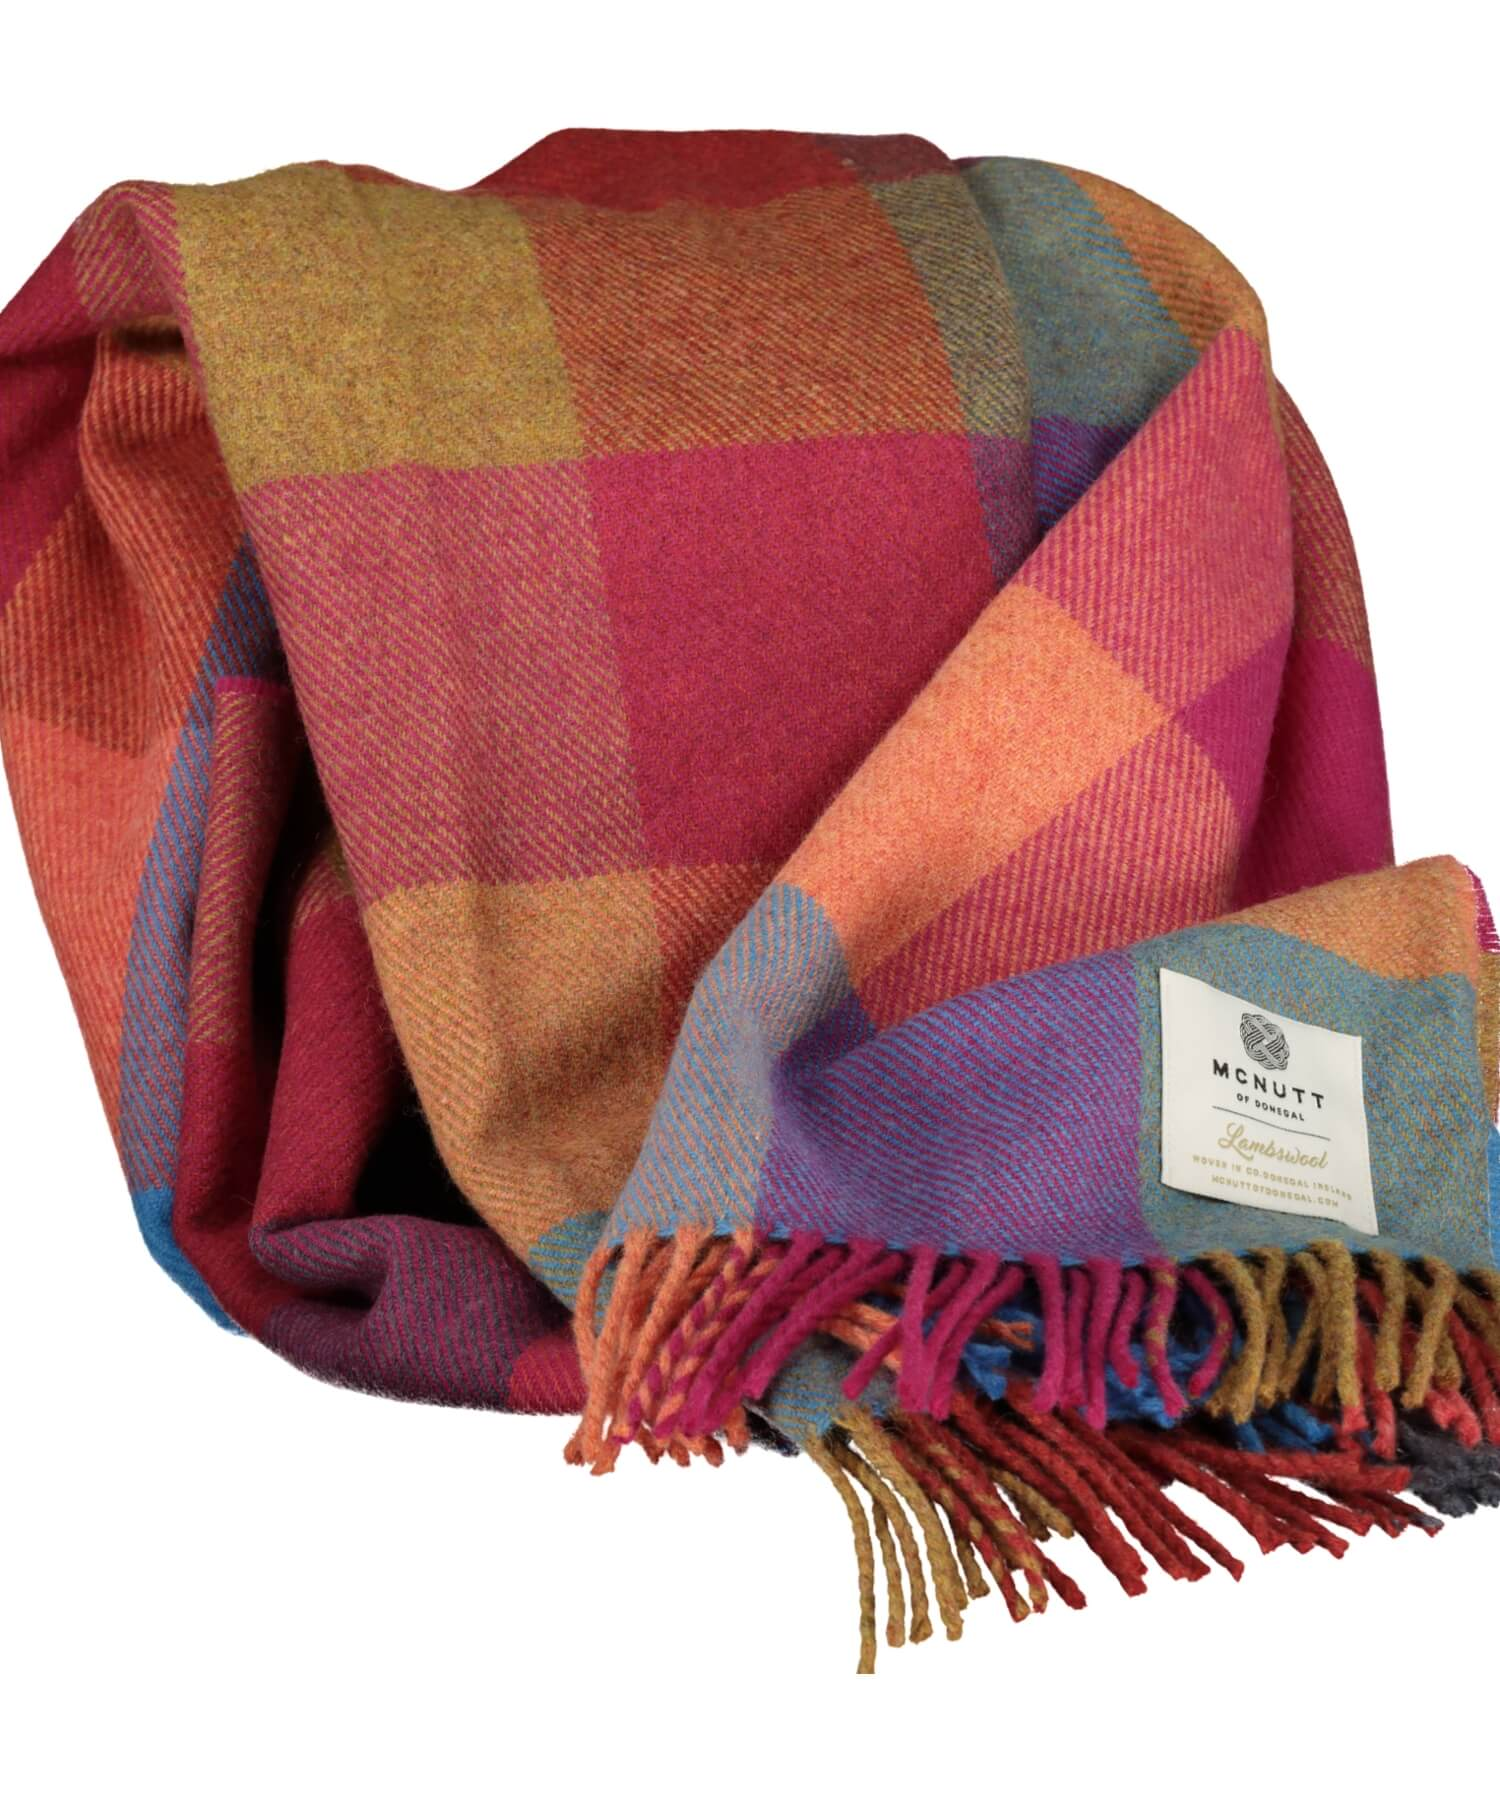 Supersoft Lambswool Throw - Joseph Check - [McNutts] - Throws & Cushions - Irish Gifts